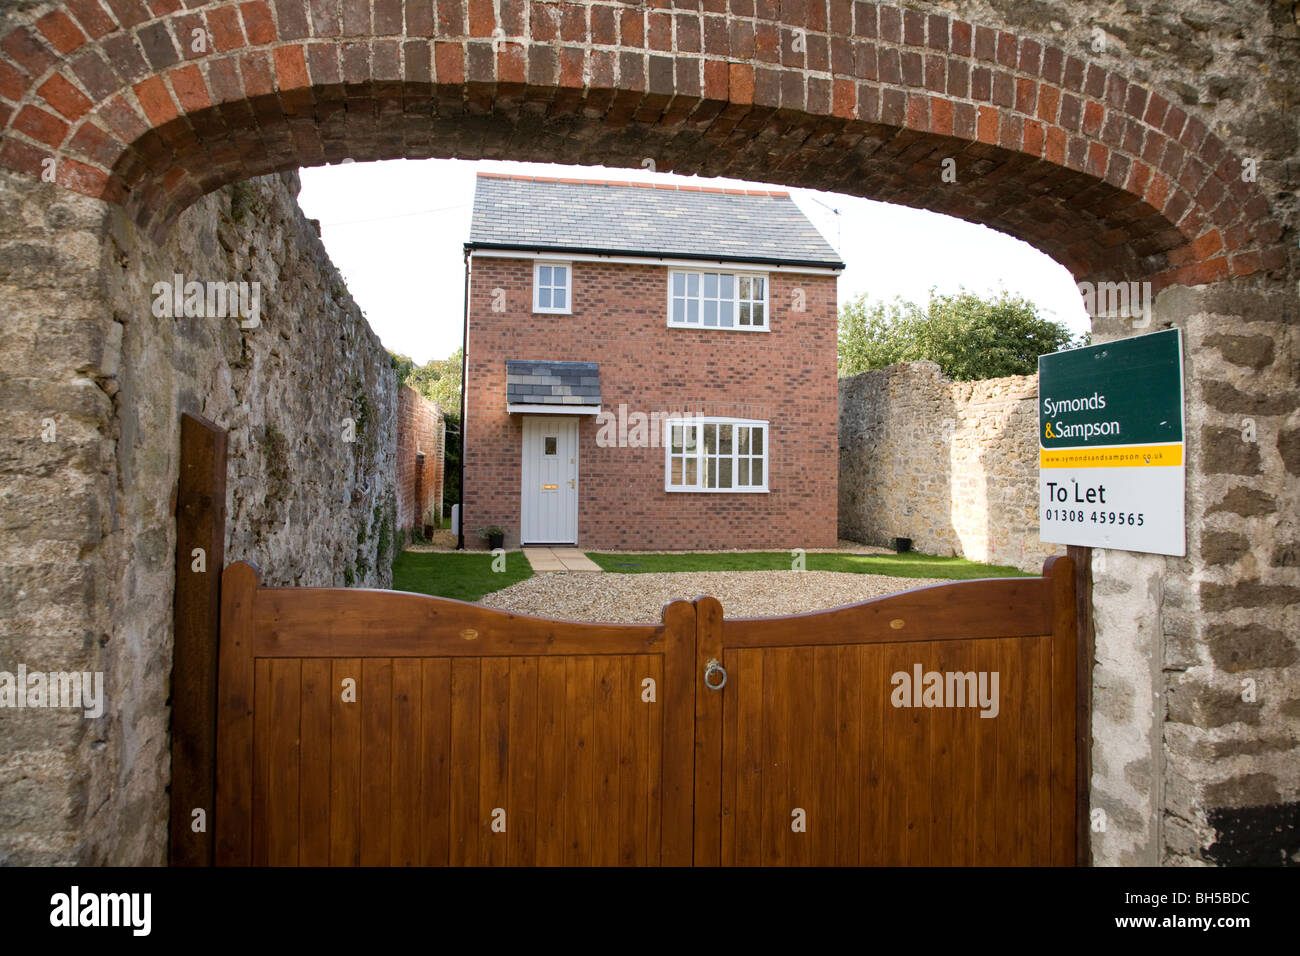 House for sale in Bridport, Dorset, England. - Stock Image